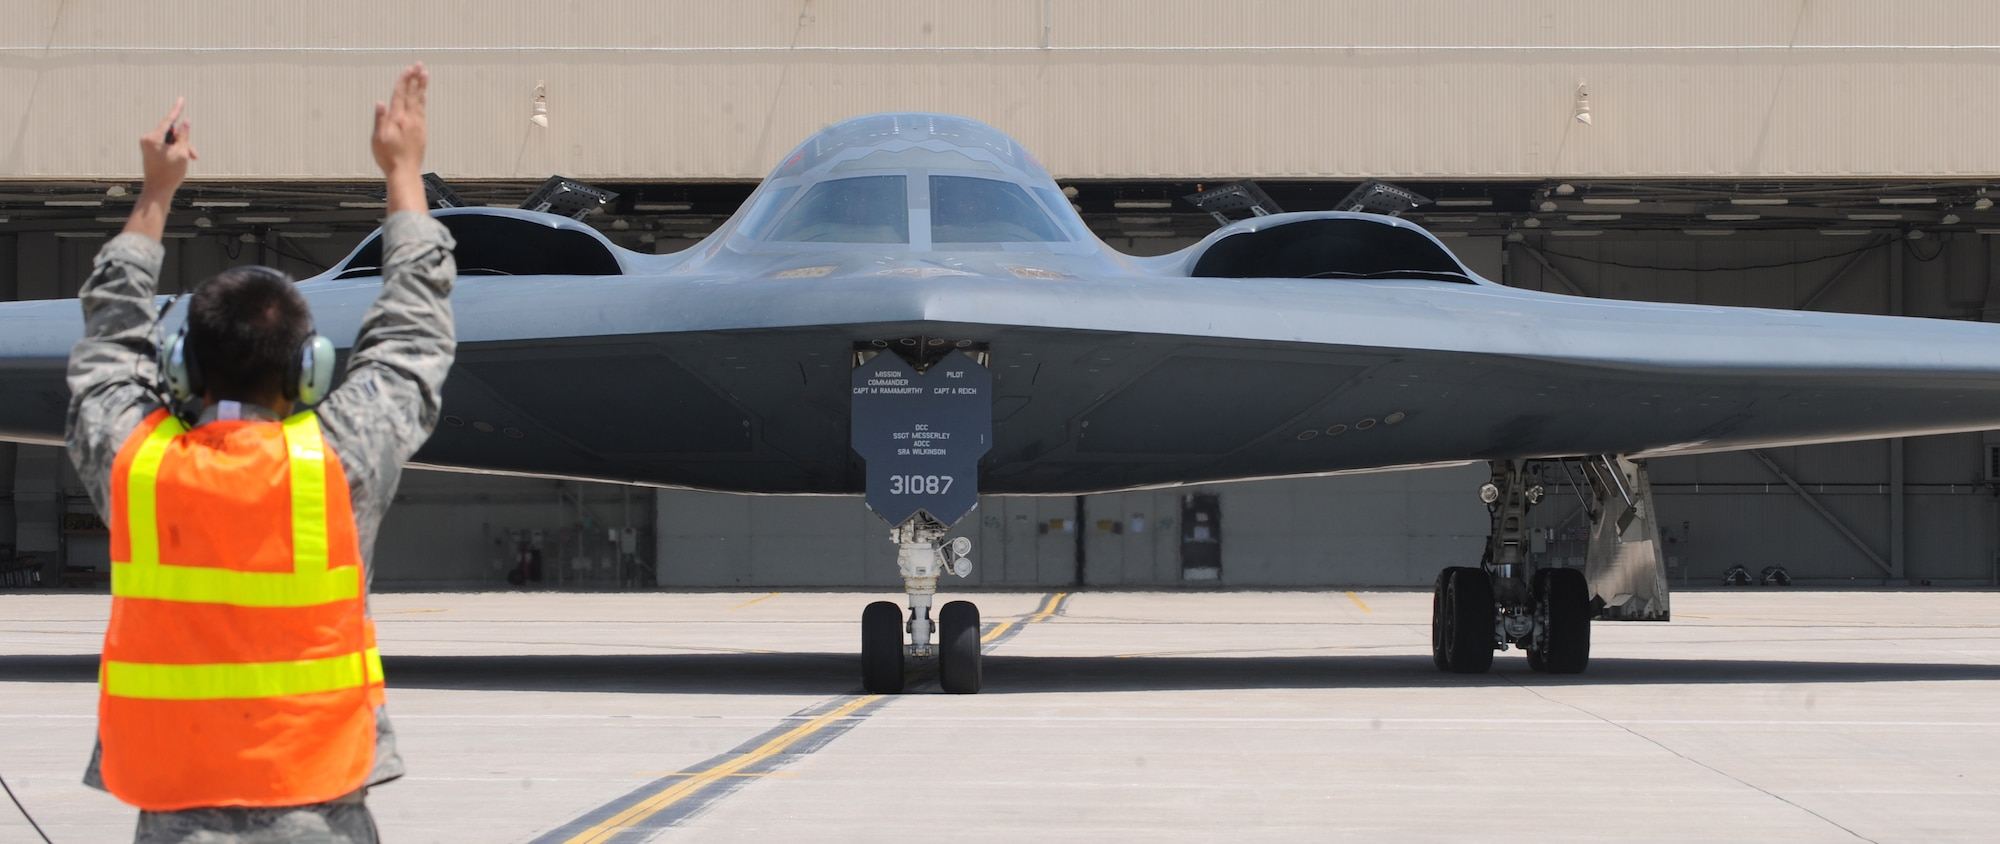 A 509th Aircraft Maintenance Squadron crew chief marshals a B-2A Spirit bomber piloted by Lt. Gen. Philippe Steininger, the commander of the French air force's Strategic Air Forces Command, during an orientation flight at Whiteman Air Force Base, Mo., May 27, 2015. This was Steininger's first visit to an Air Force Global Strike Command base since assuming command. (U.S. Air Force photo/Staff Sgt. Alexandra M. Longfellow)